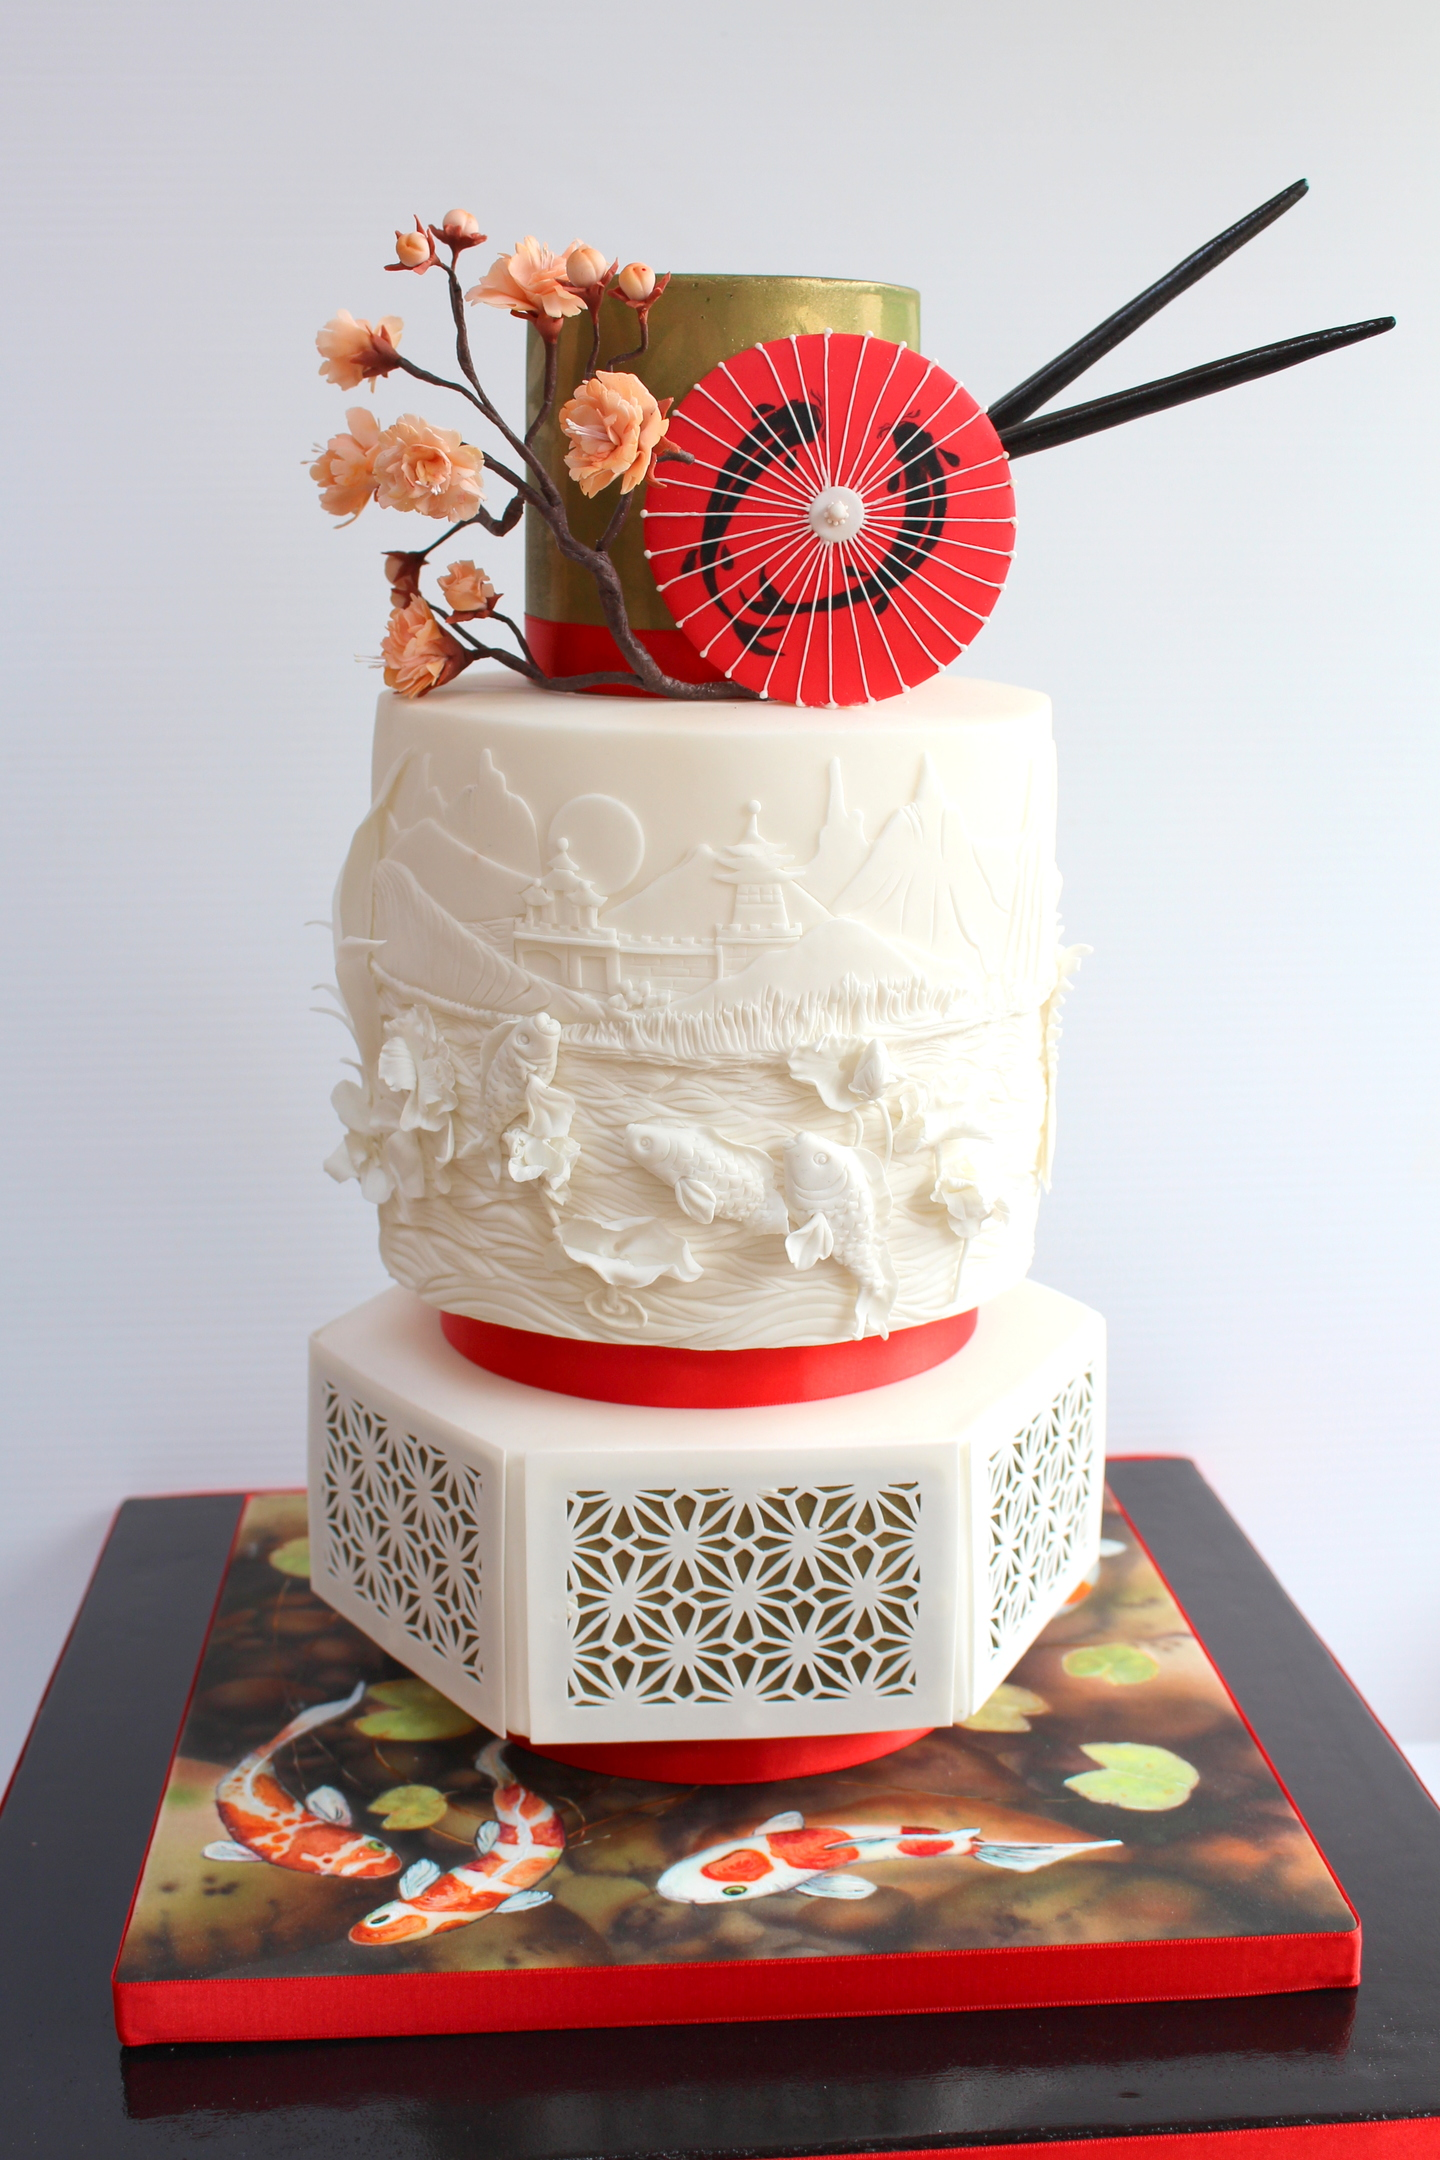 Splendor Cakes And More By Ellen Redmond Dublin Bakers And Cakers